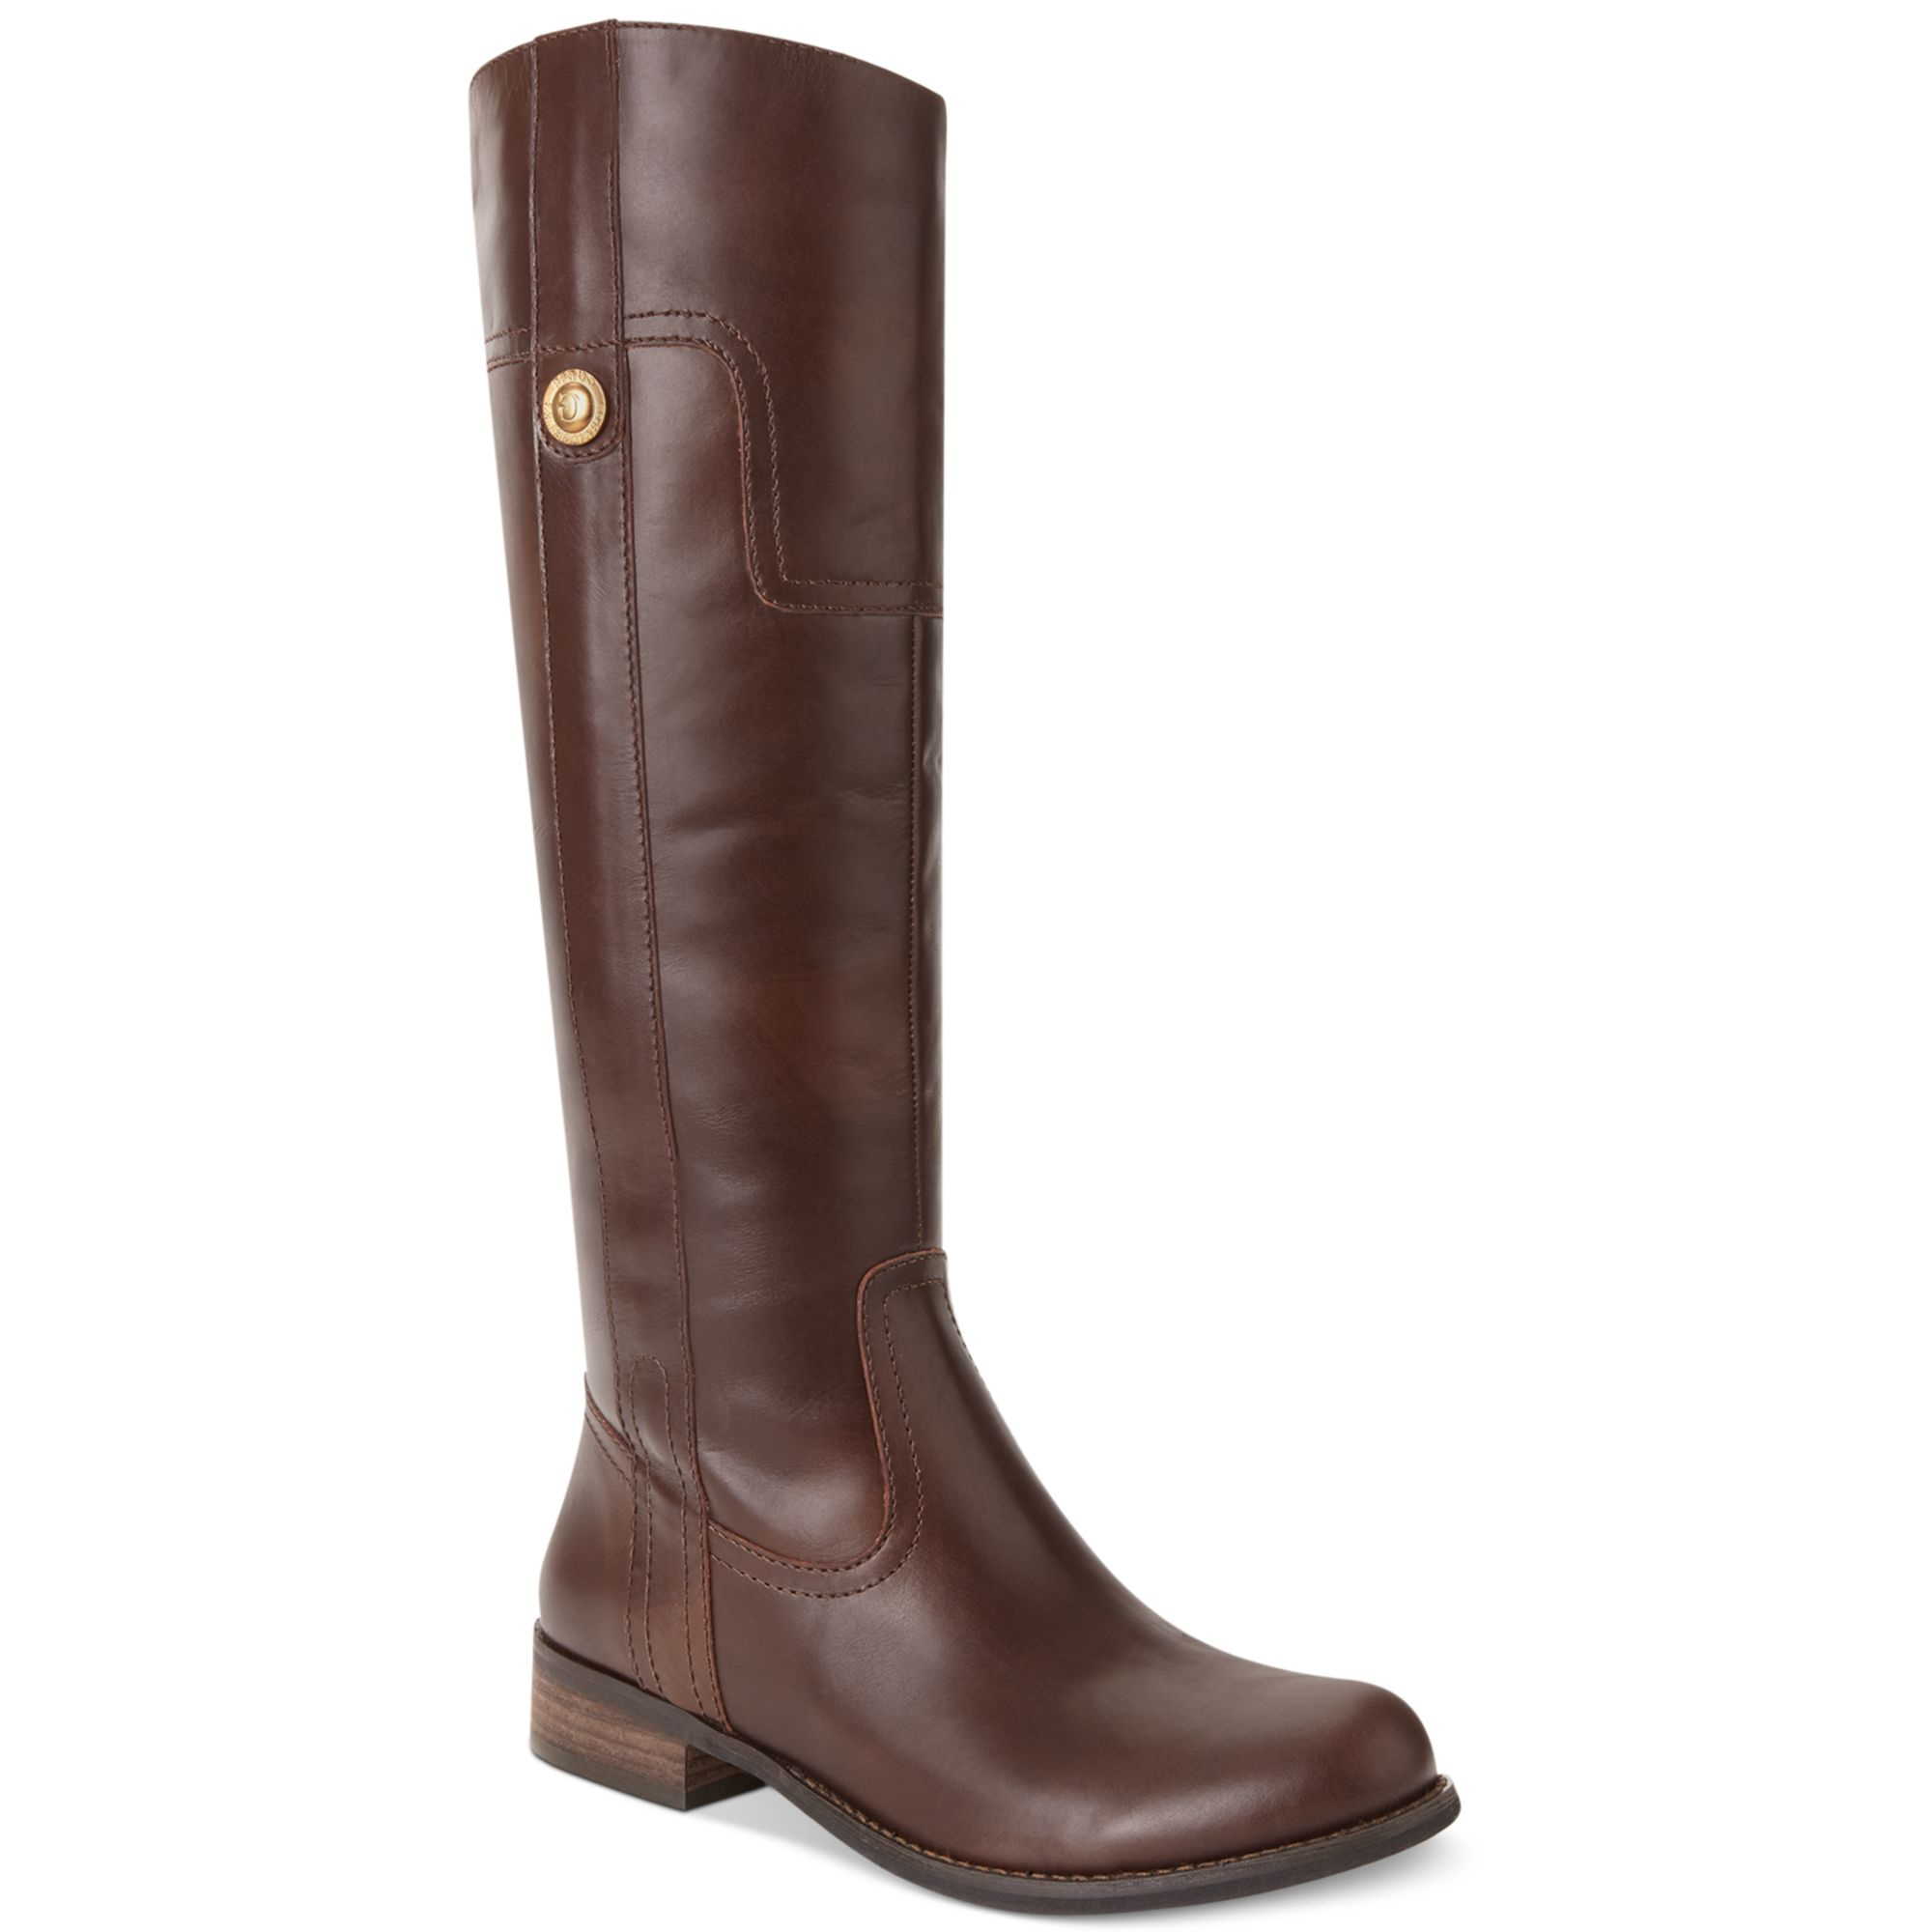 Shop for UGG boots, shoes, sleepers and more at Macy's. Great selection of UGG products and FREE shipping with $99 purchase.